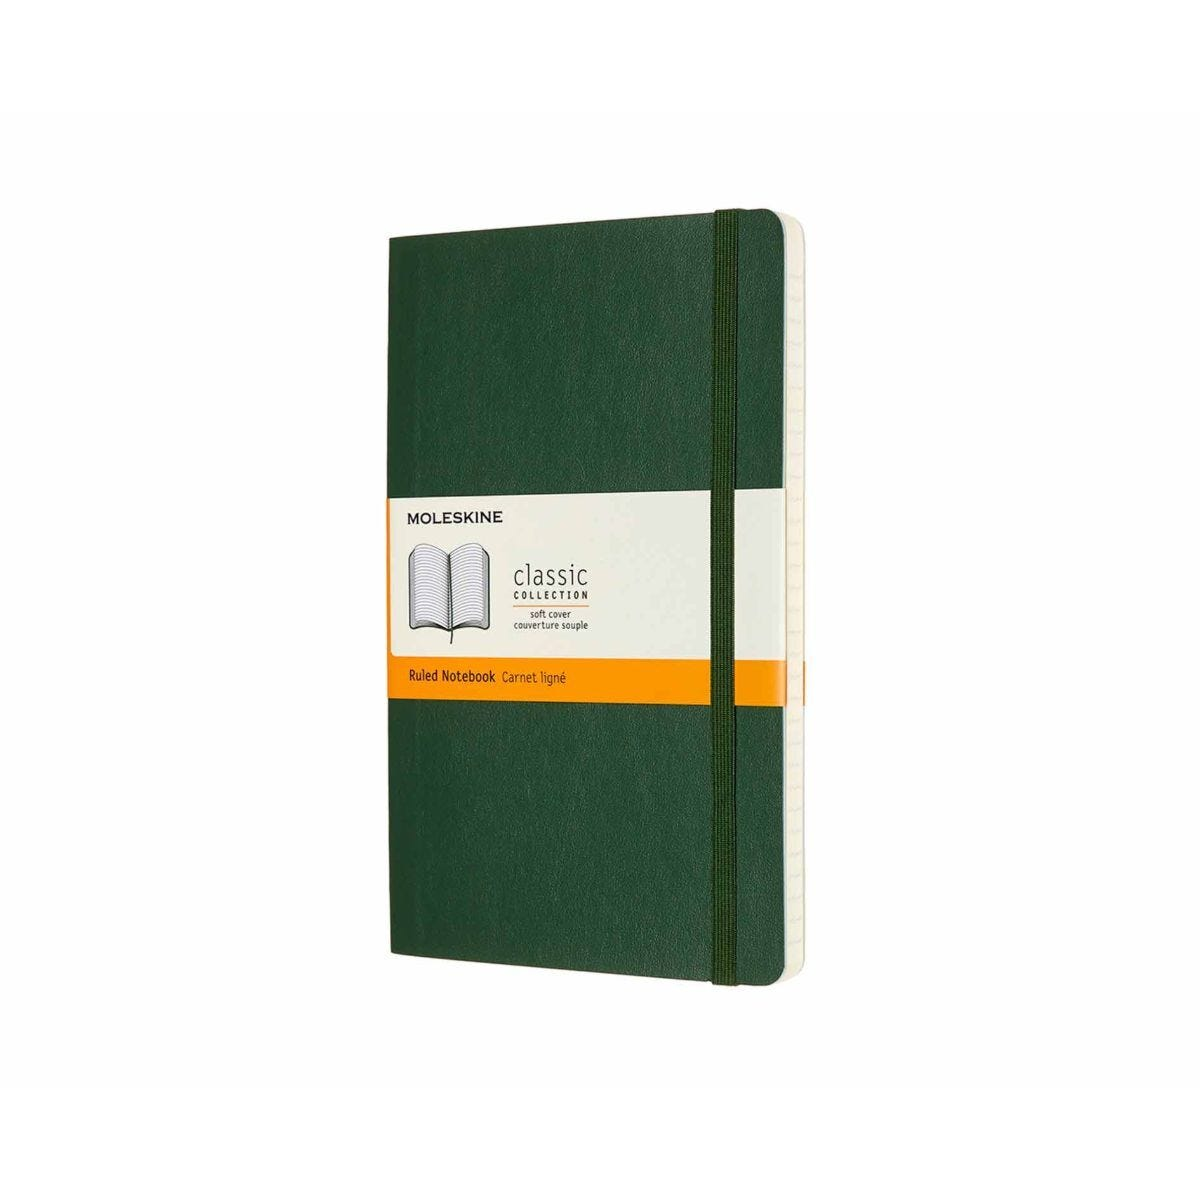 Moleskine Classic Notebook Soft Cover Large Ruled Myrtle Green